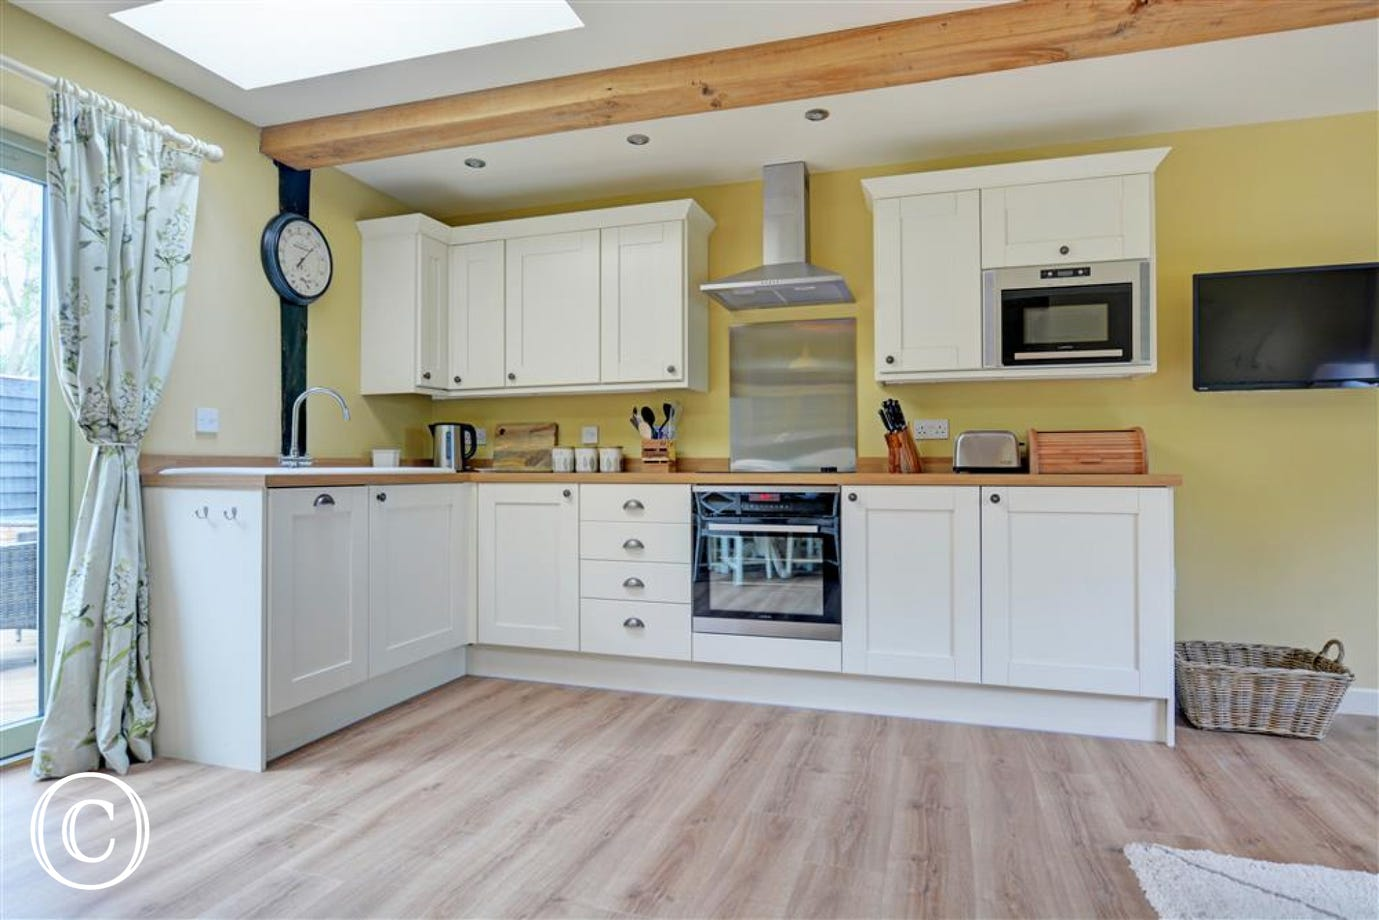 Kitchen area within the open plan room